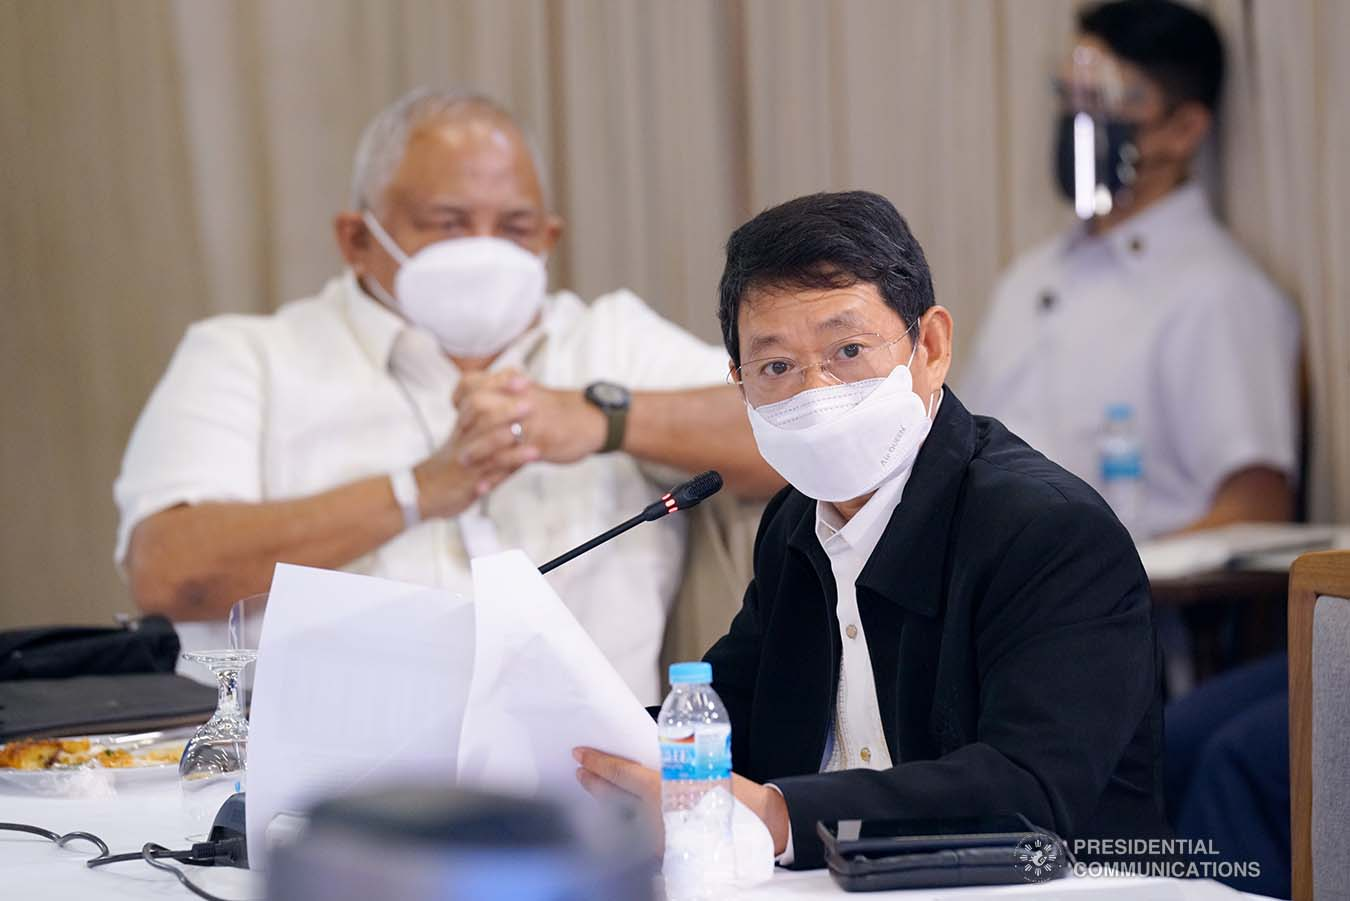 Interior and Local Government Secretary Eduardo Año gives an update to President Rodrigo Roa Duterte during a meeting with the Inter-Agency Task Force on the Emerging Infectious Diseases (IATF-EID) core members at the Arcadia Active Lifestyle Center in Matina, Davao City on September 22, 2021. ROEMARI LISMONERO/ PRESIDENTIAL PHOTO